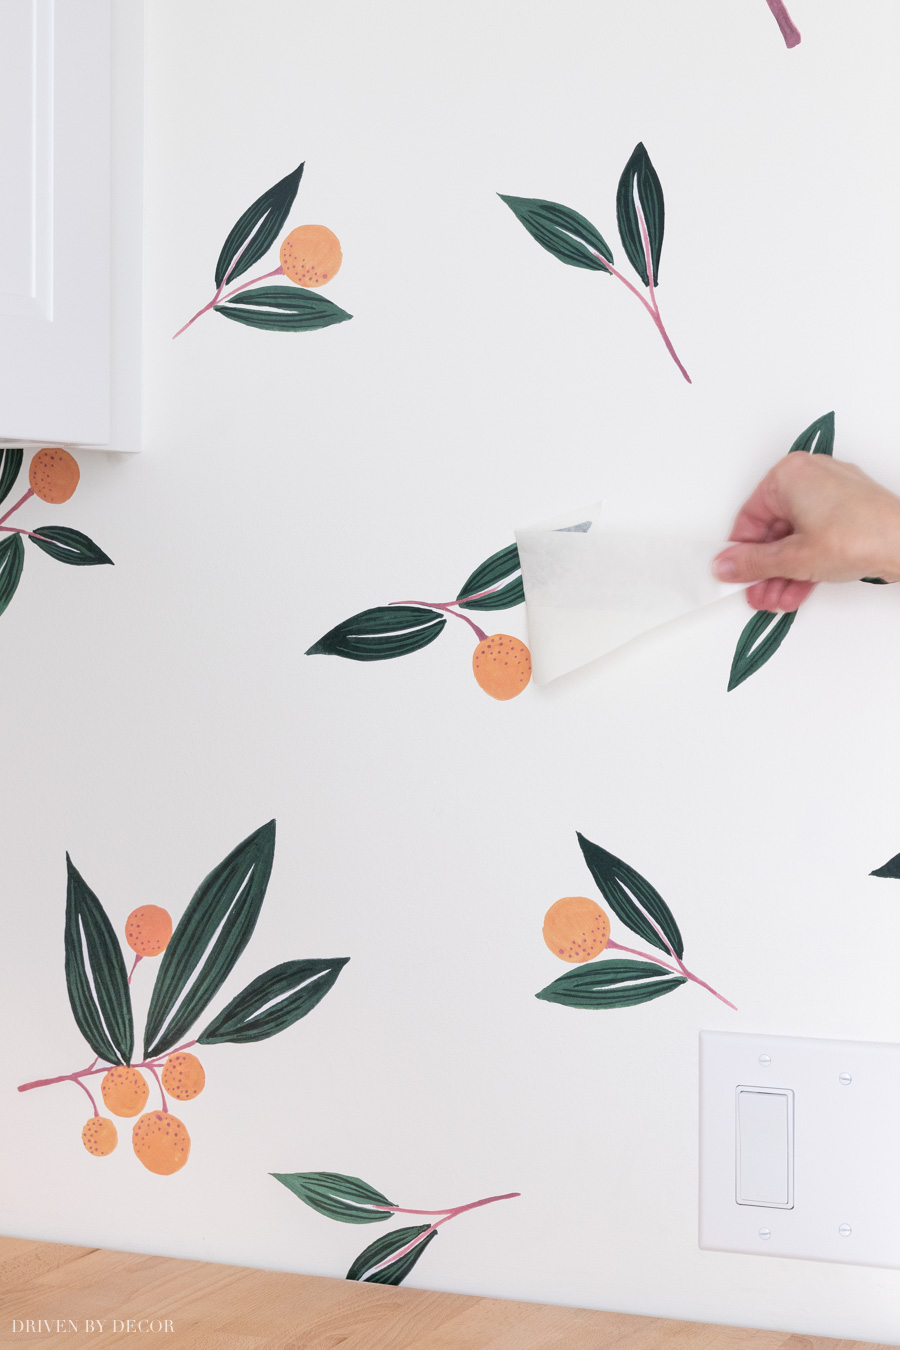 A great step by step on how to apply vinyl wall decals so they look like wallpaper!